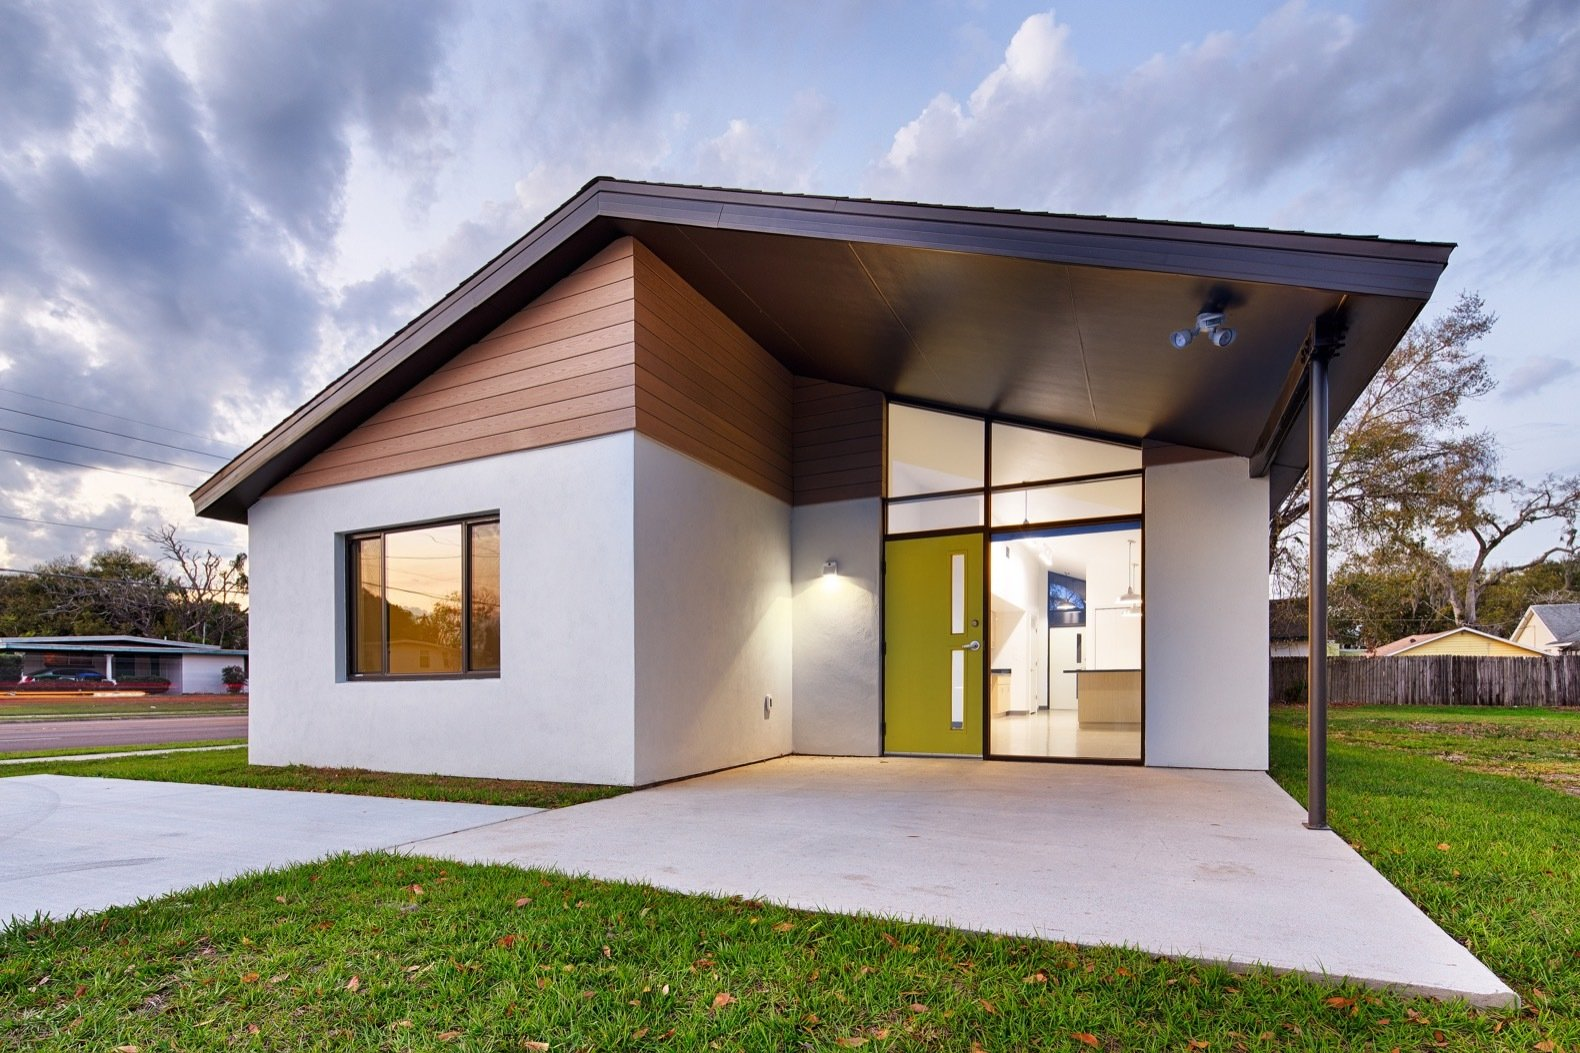 Budget Breakdown: These Transitional Homes For At-Risk Clients Cost Less Than $200K